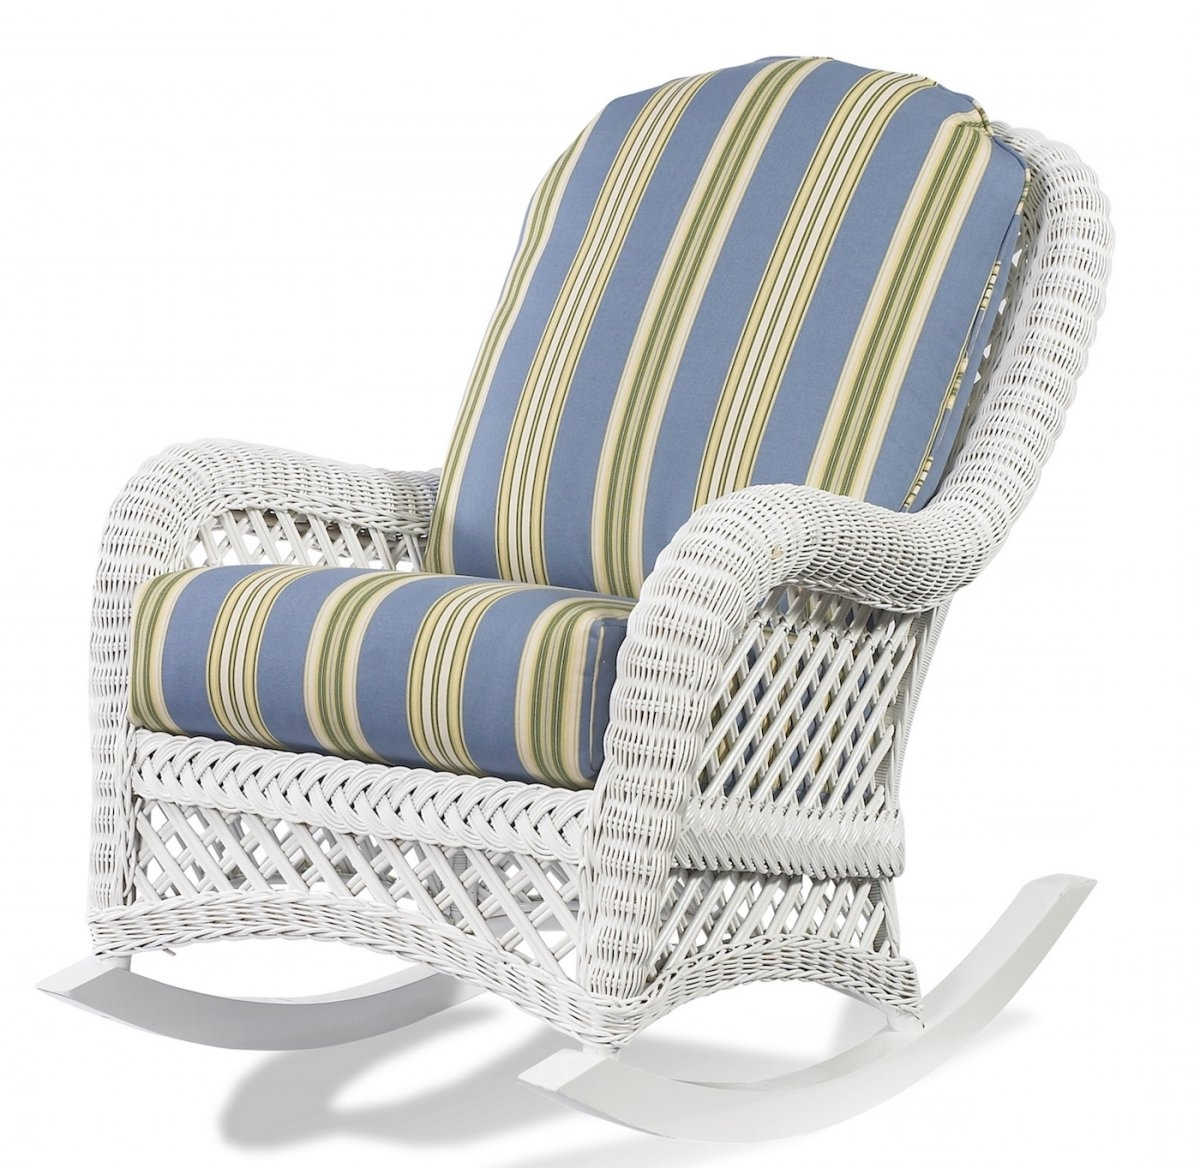 Most Recently Released Wicker Rocking Chairs With Cushions Intended For Vintage Patio Decoration With Wicker Rocking Chair Cushion Patio (View 8 of 20)